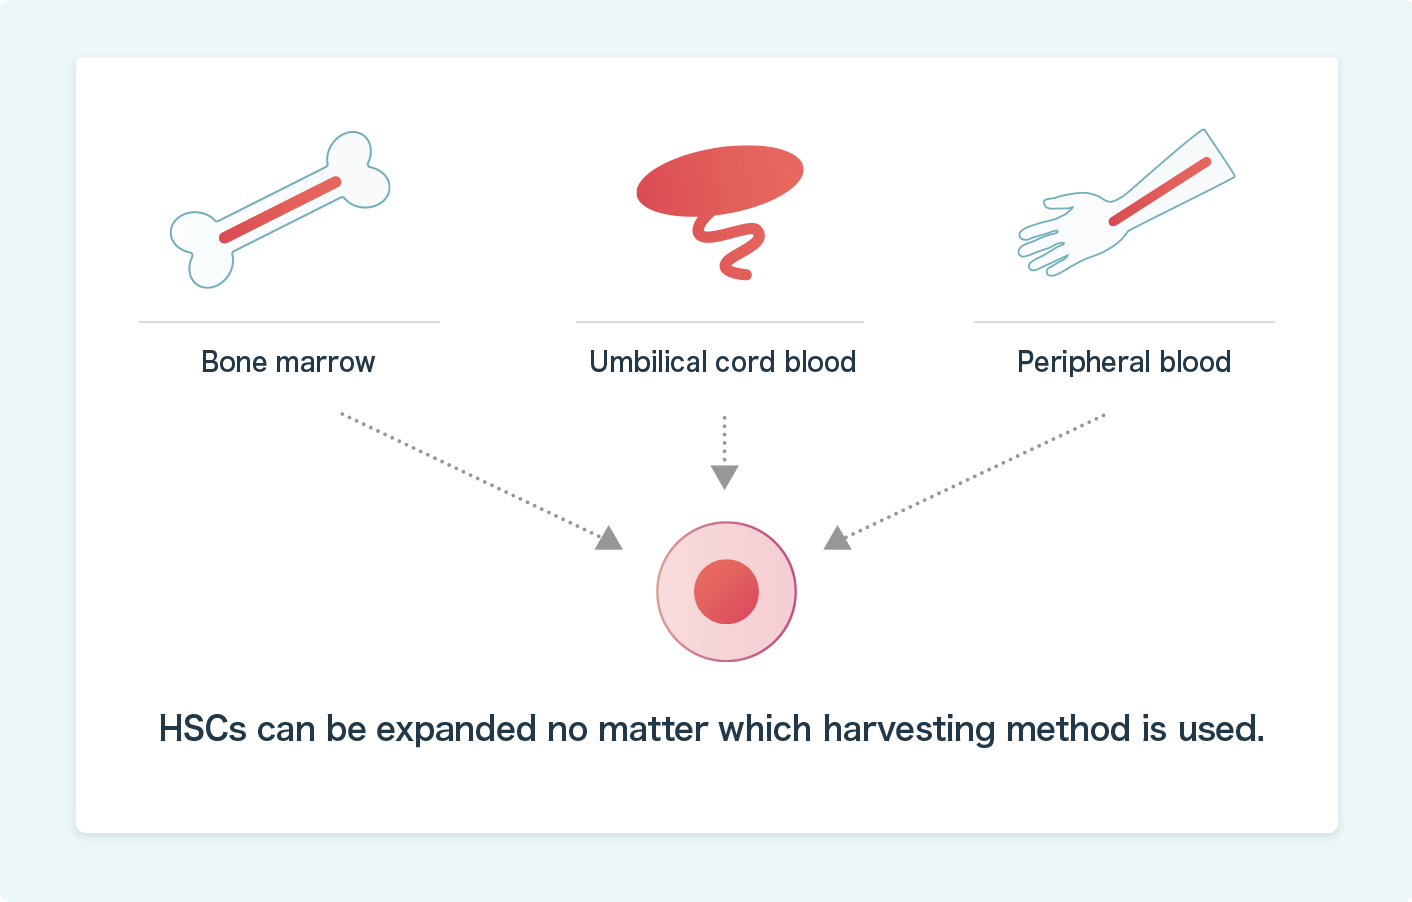 HSCs can be expanded in-vitro, regardless of their origin, whether umbilical cord blood, bone marrow or peripheral blood.